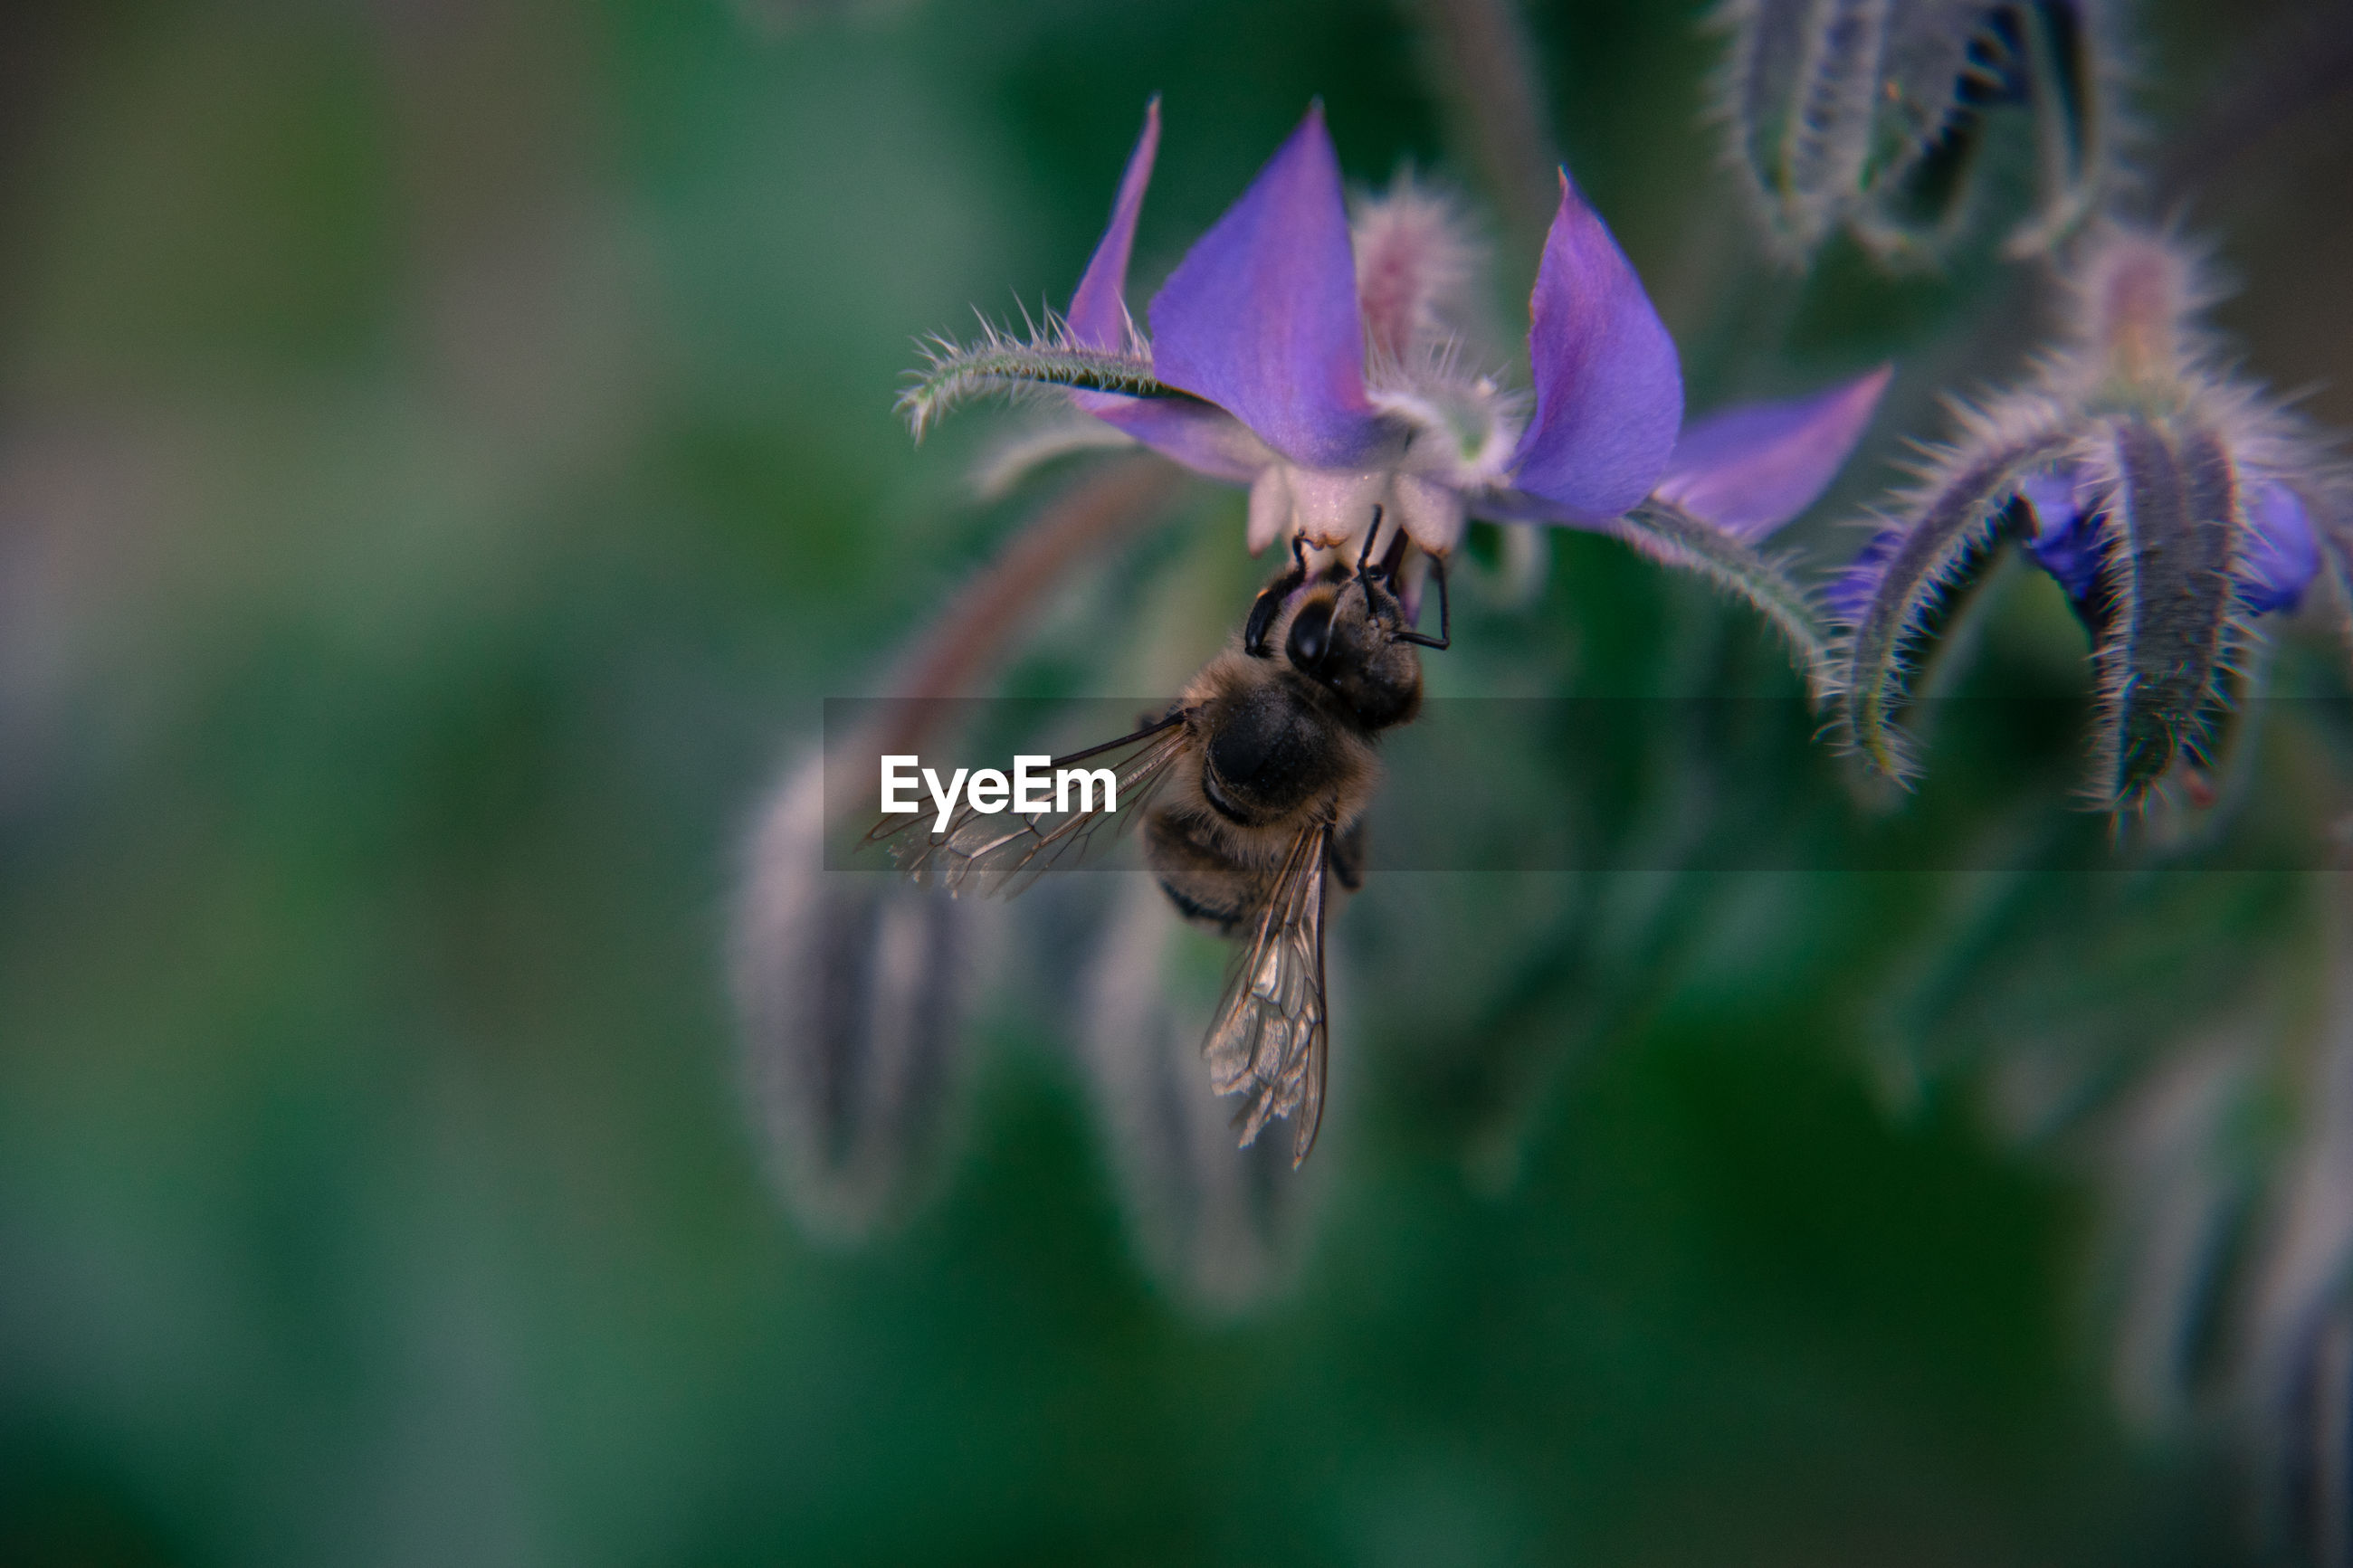 CLOSE-UP OF BEE POLLINATING ON FLOWERS